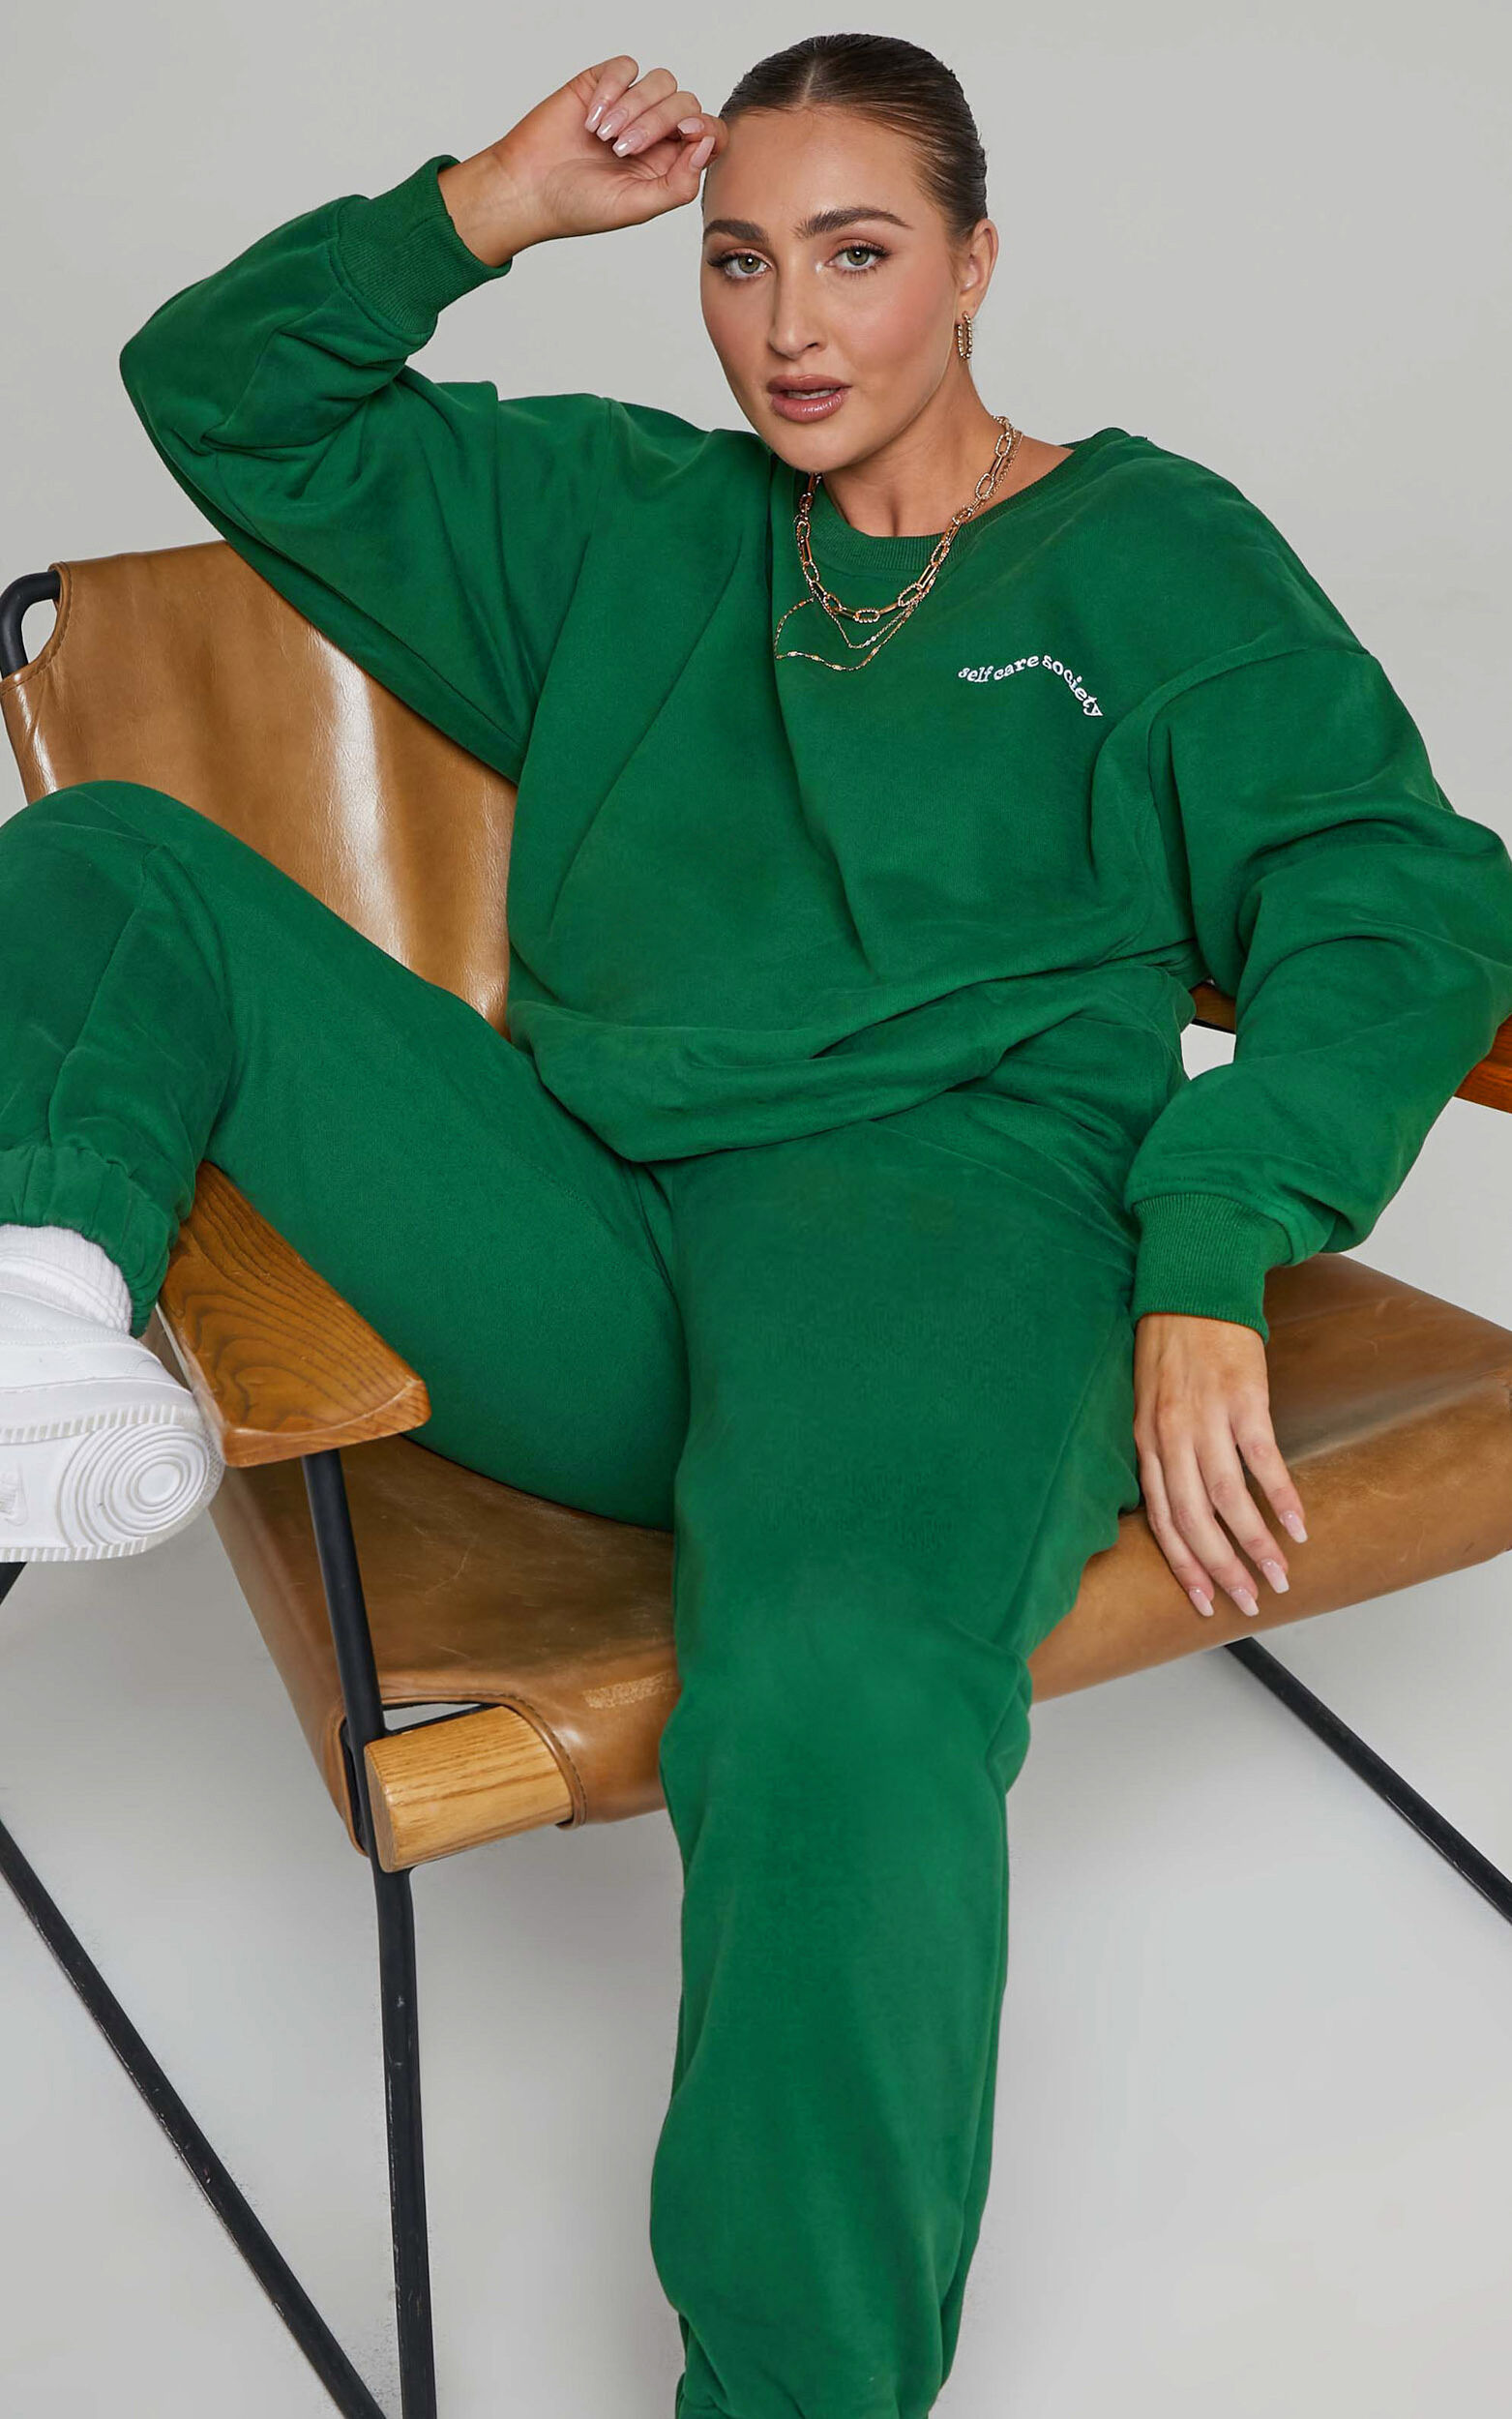 Sunday Society Club - Gael Sweatshirt in Green - 04, GRN2, super-hi-res image number null